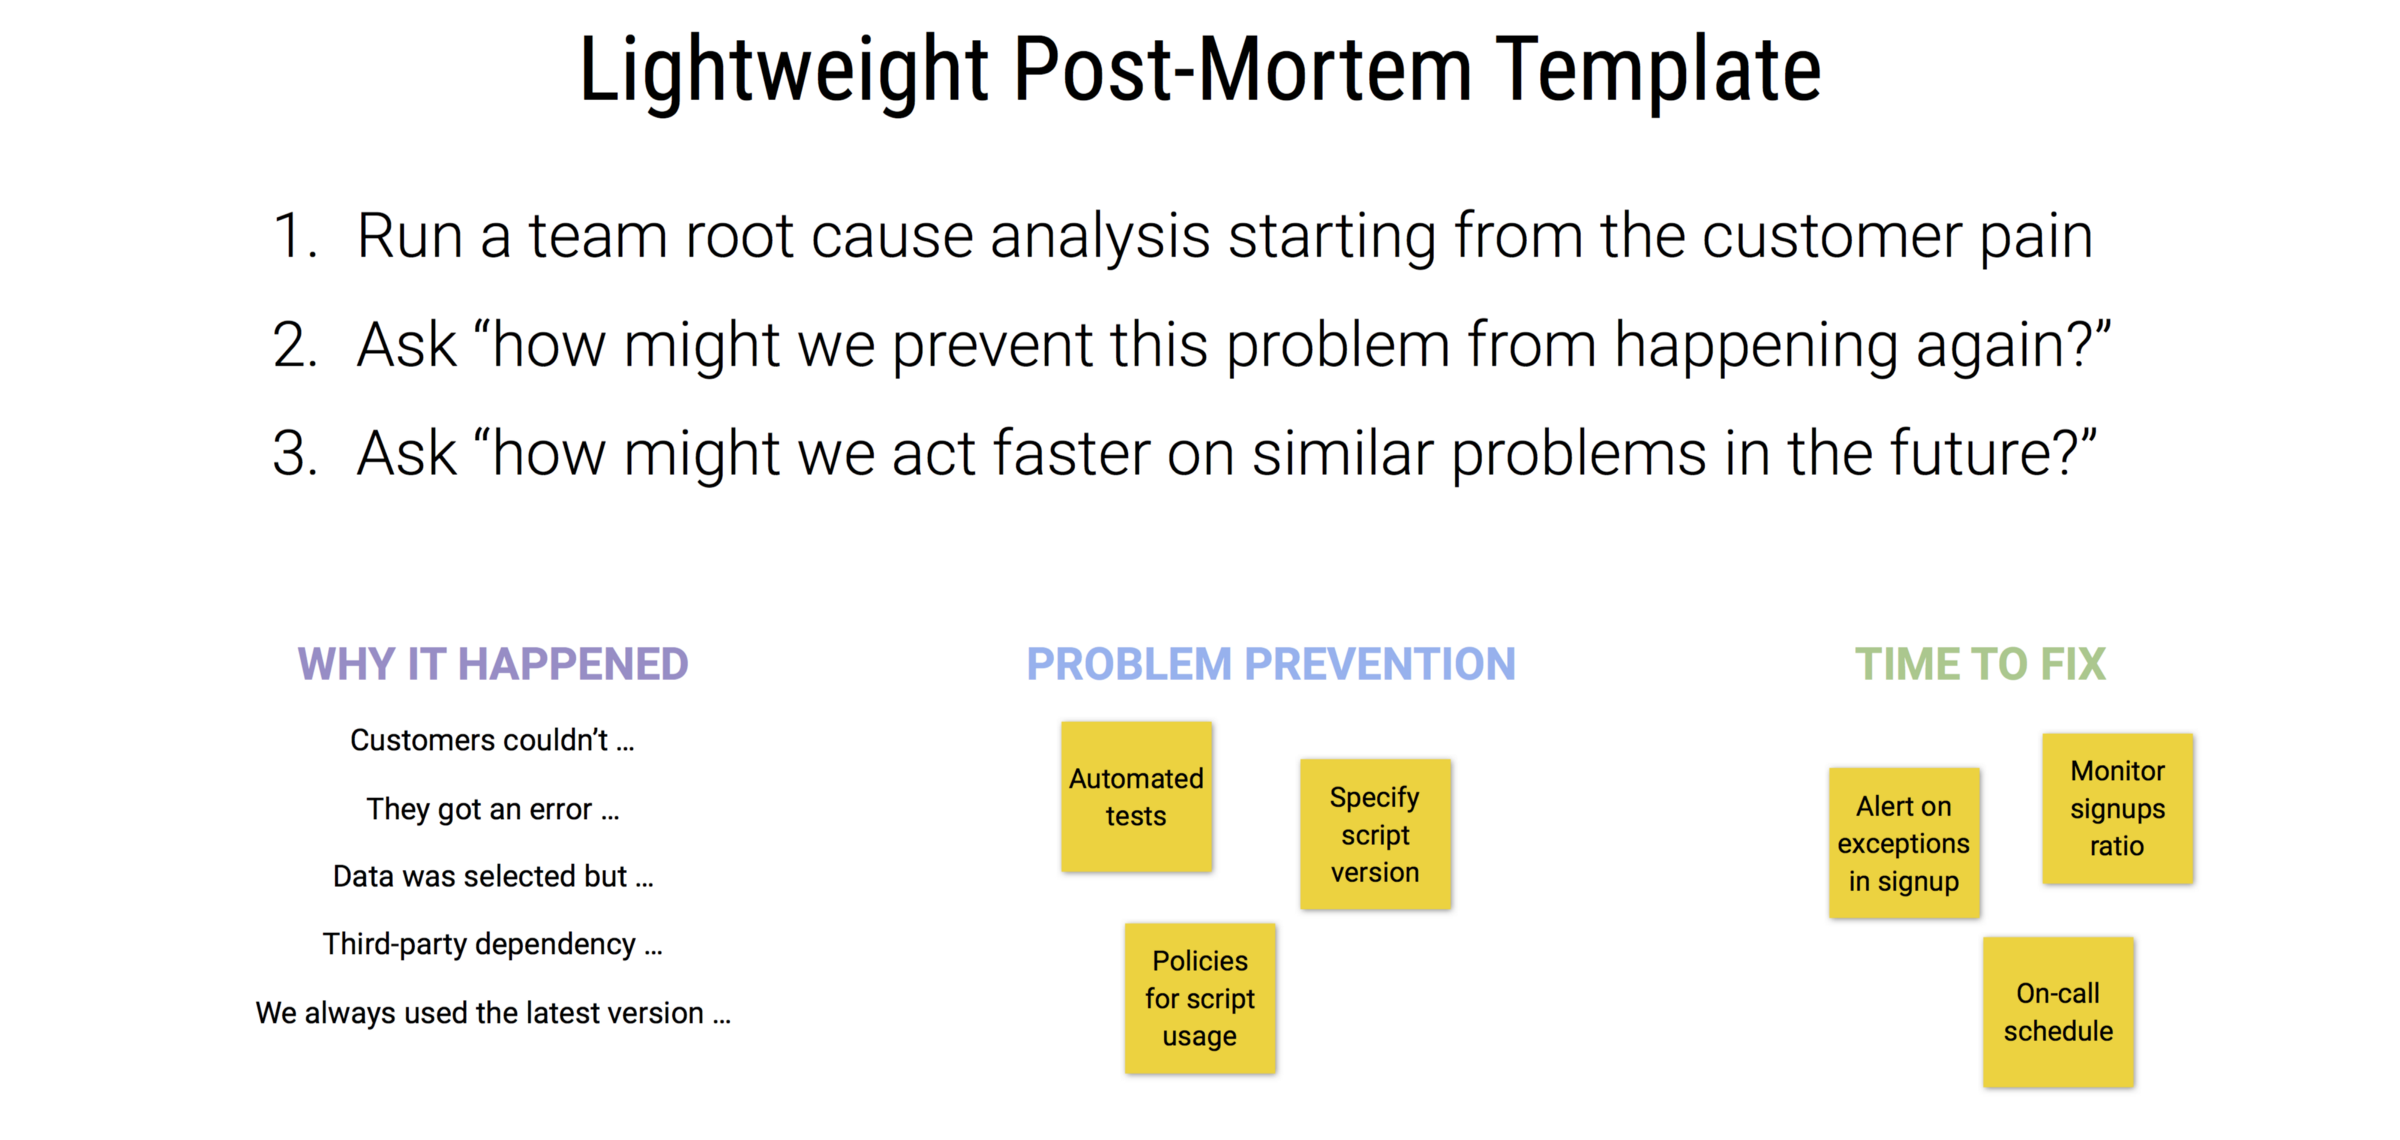 an example and template for conducting lightweight post